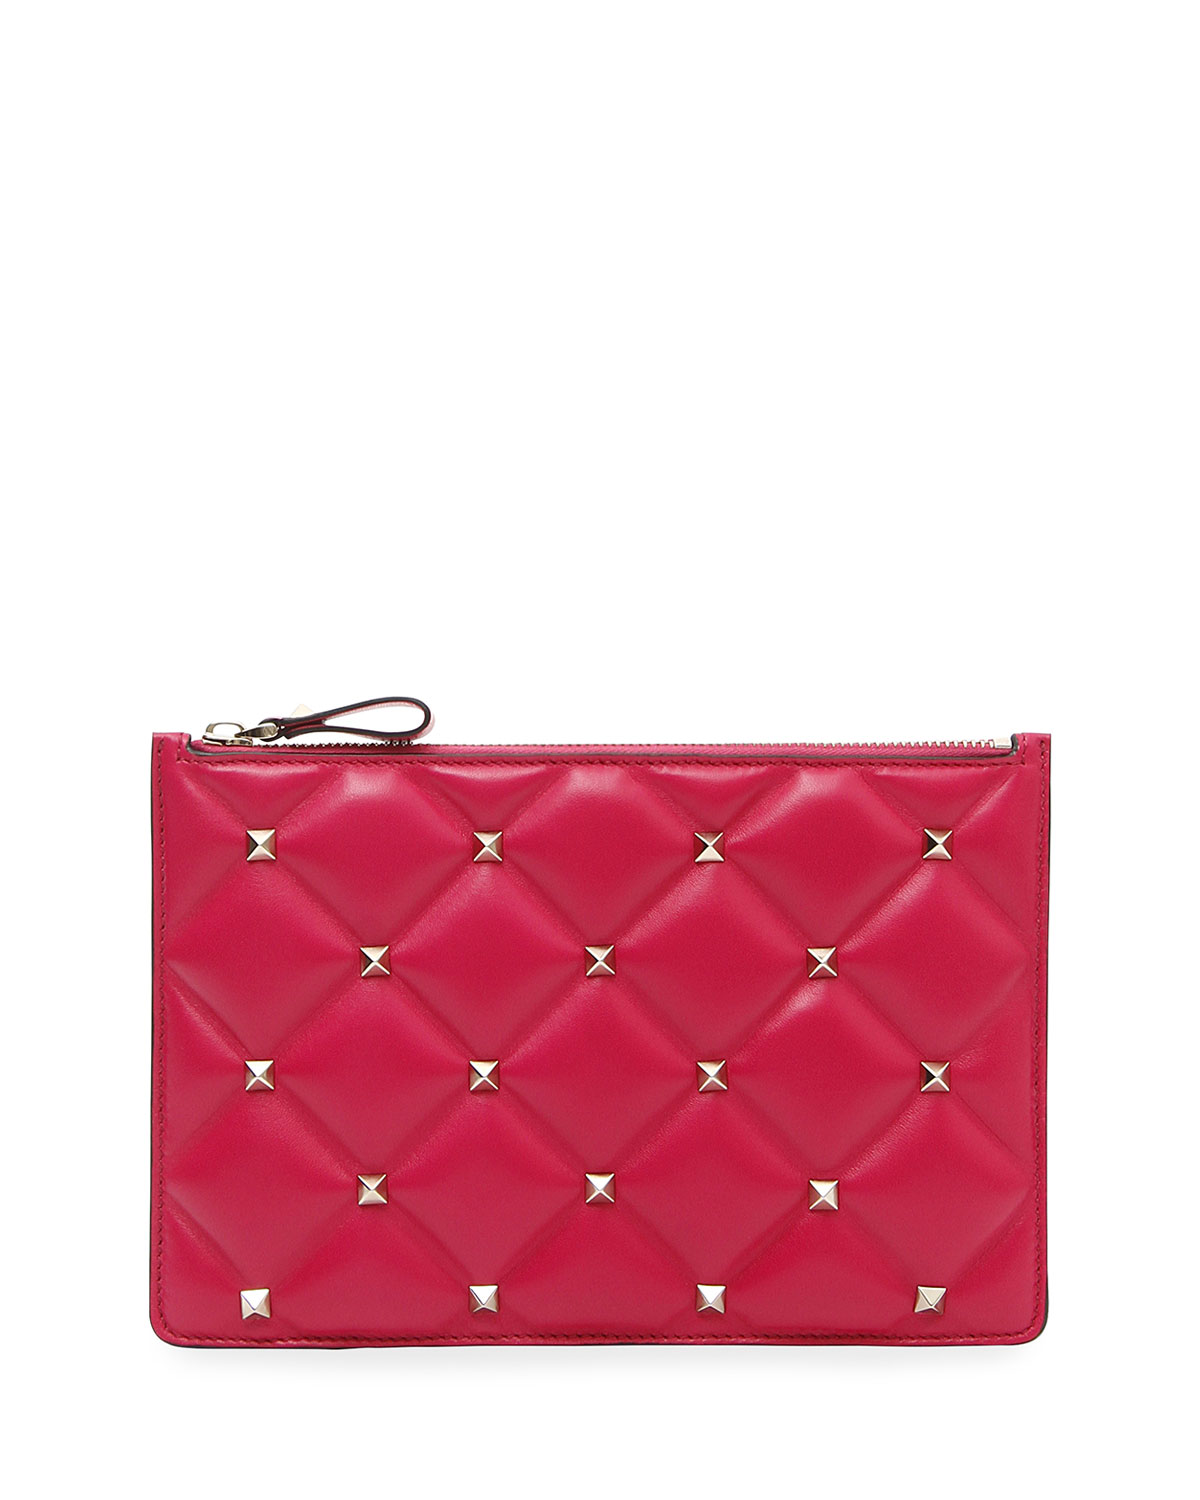 Candystud Medium Flat Quilted Leather Pouch Bag